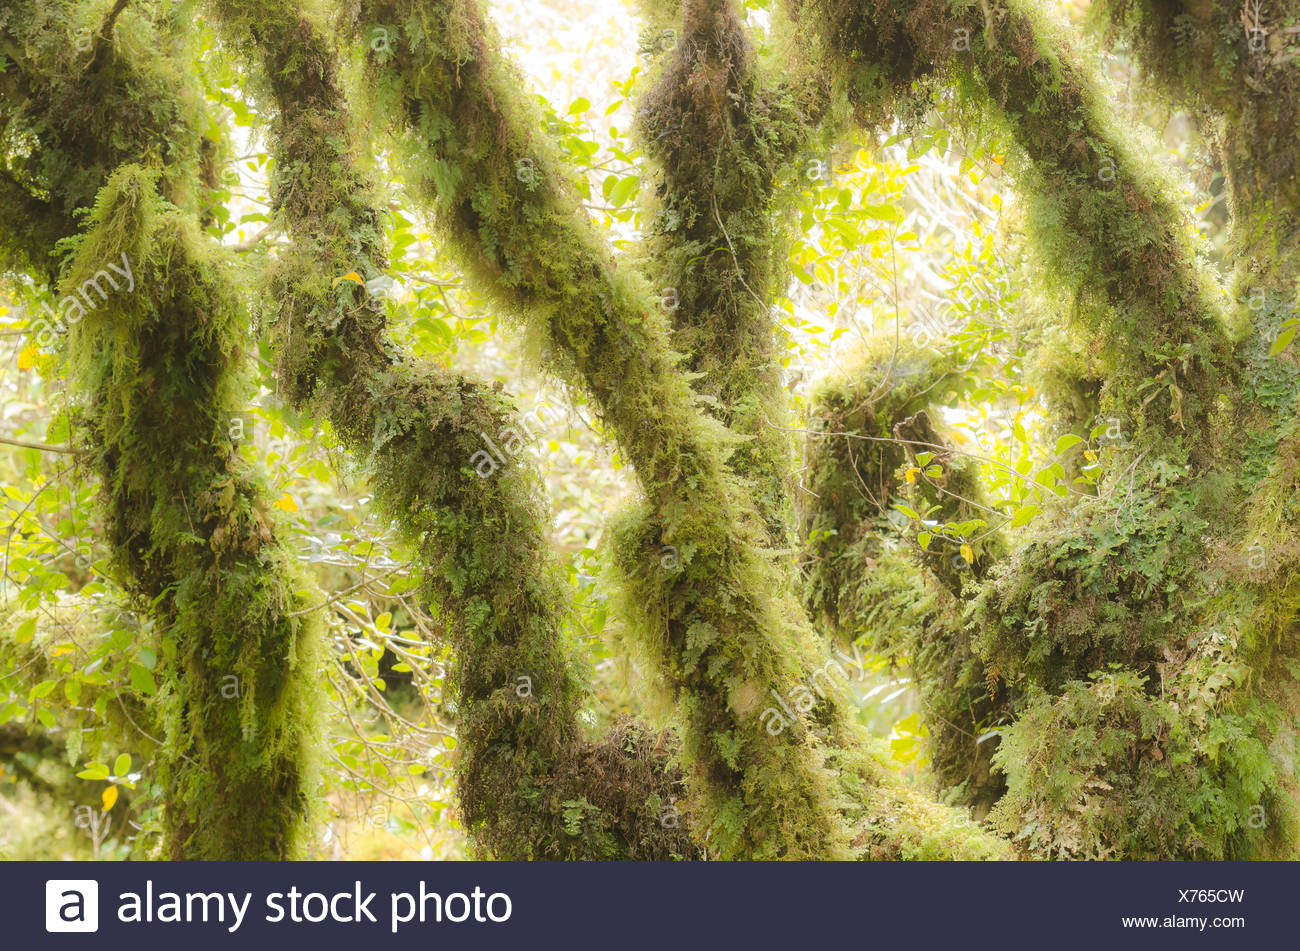 Temperate rainforest vegetation, with moss-covered trees, Mt. Egmont National Park, North Island, New Zealand - Stock Image